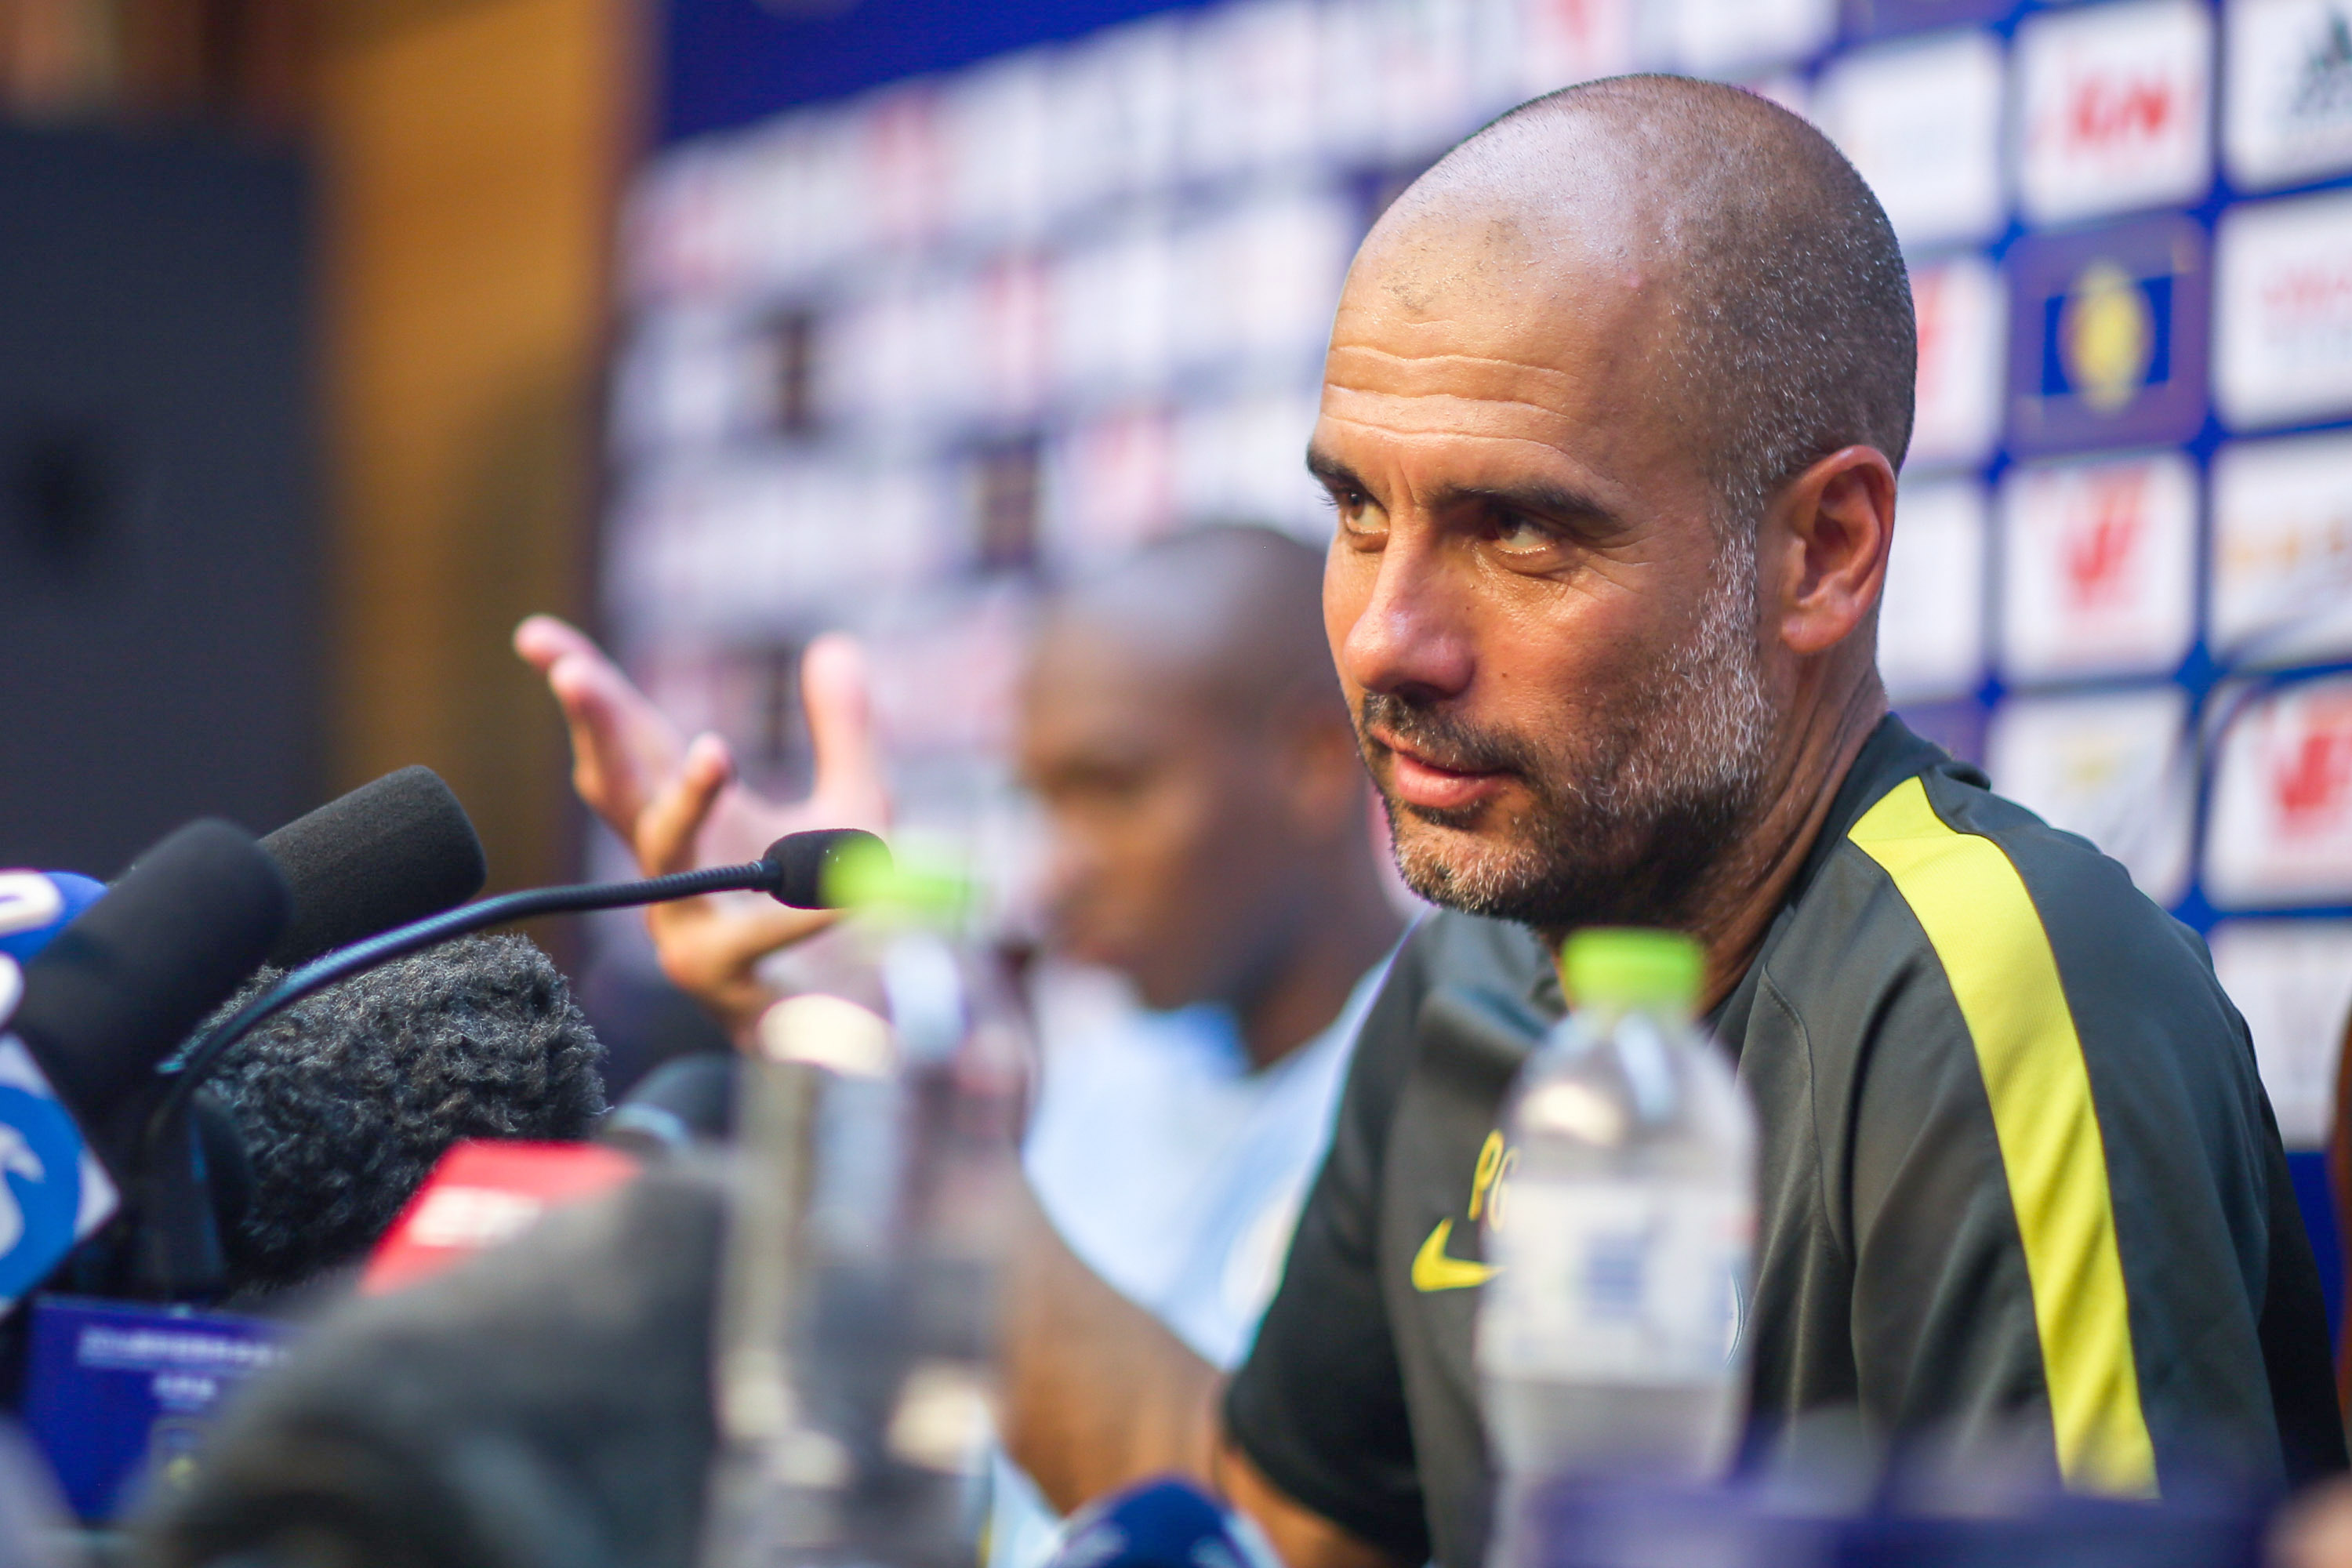 579452046-manchester-city-pre-game-training